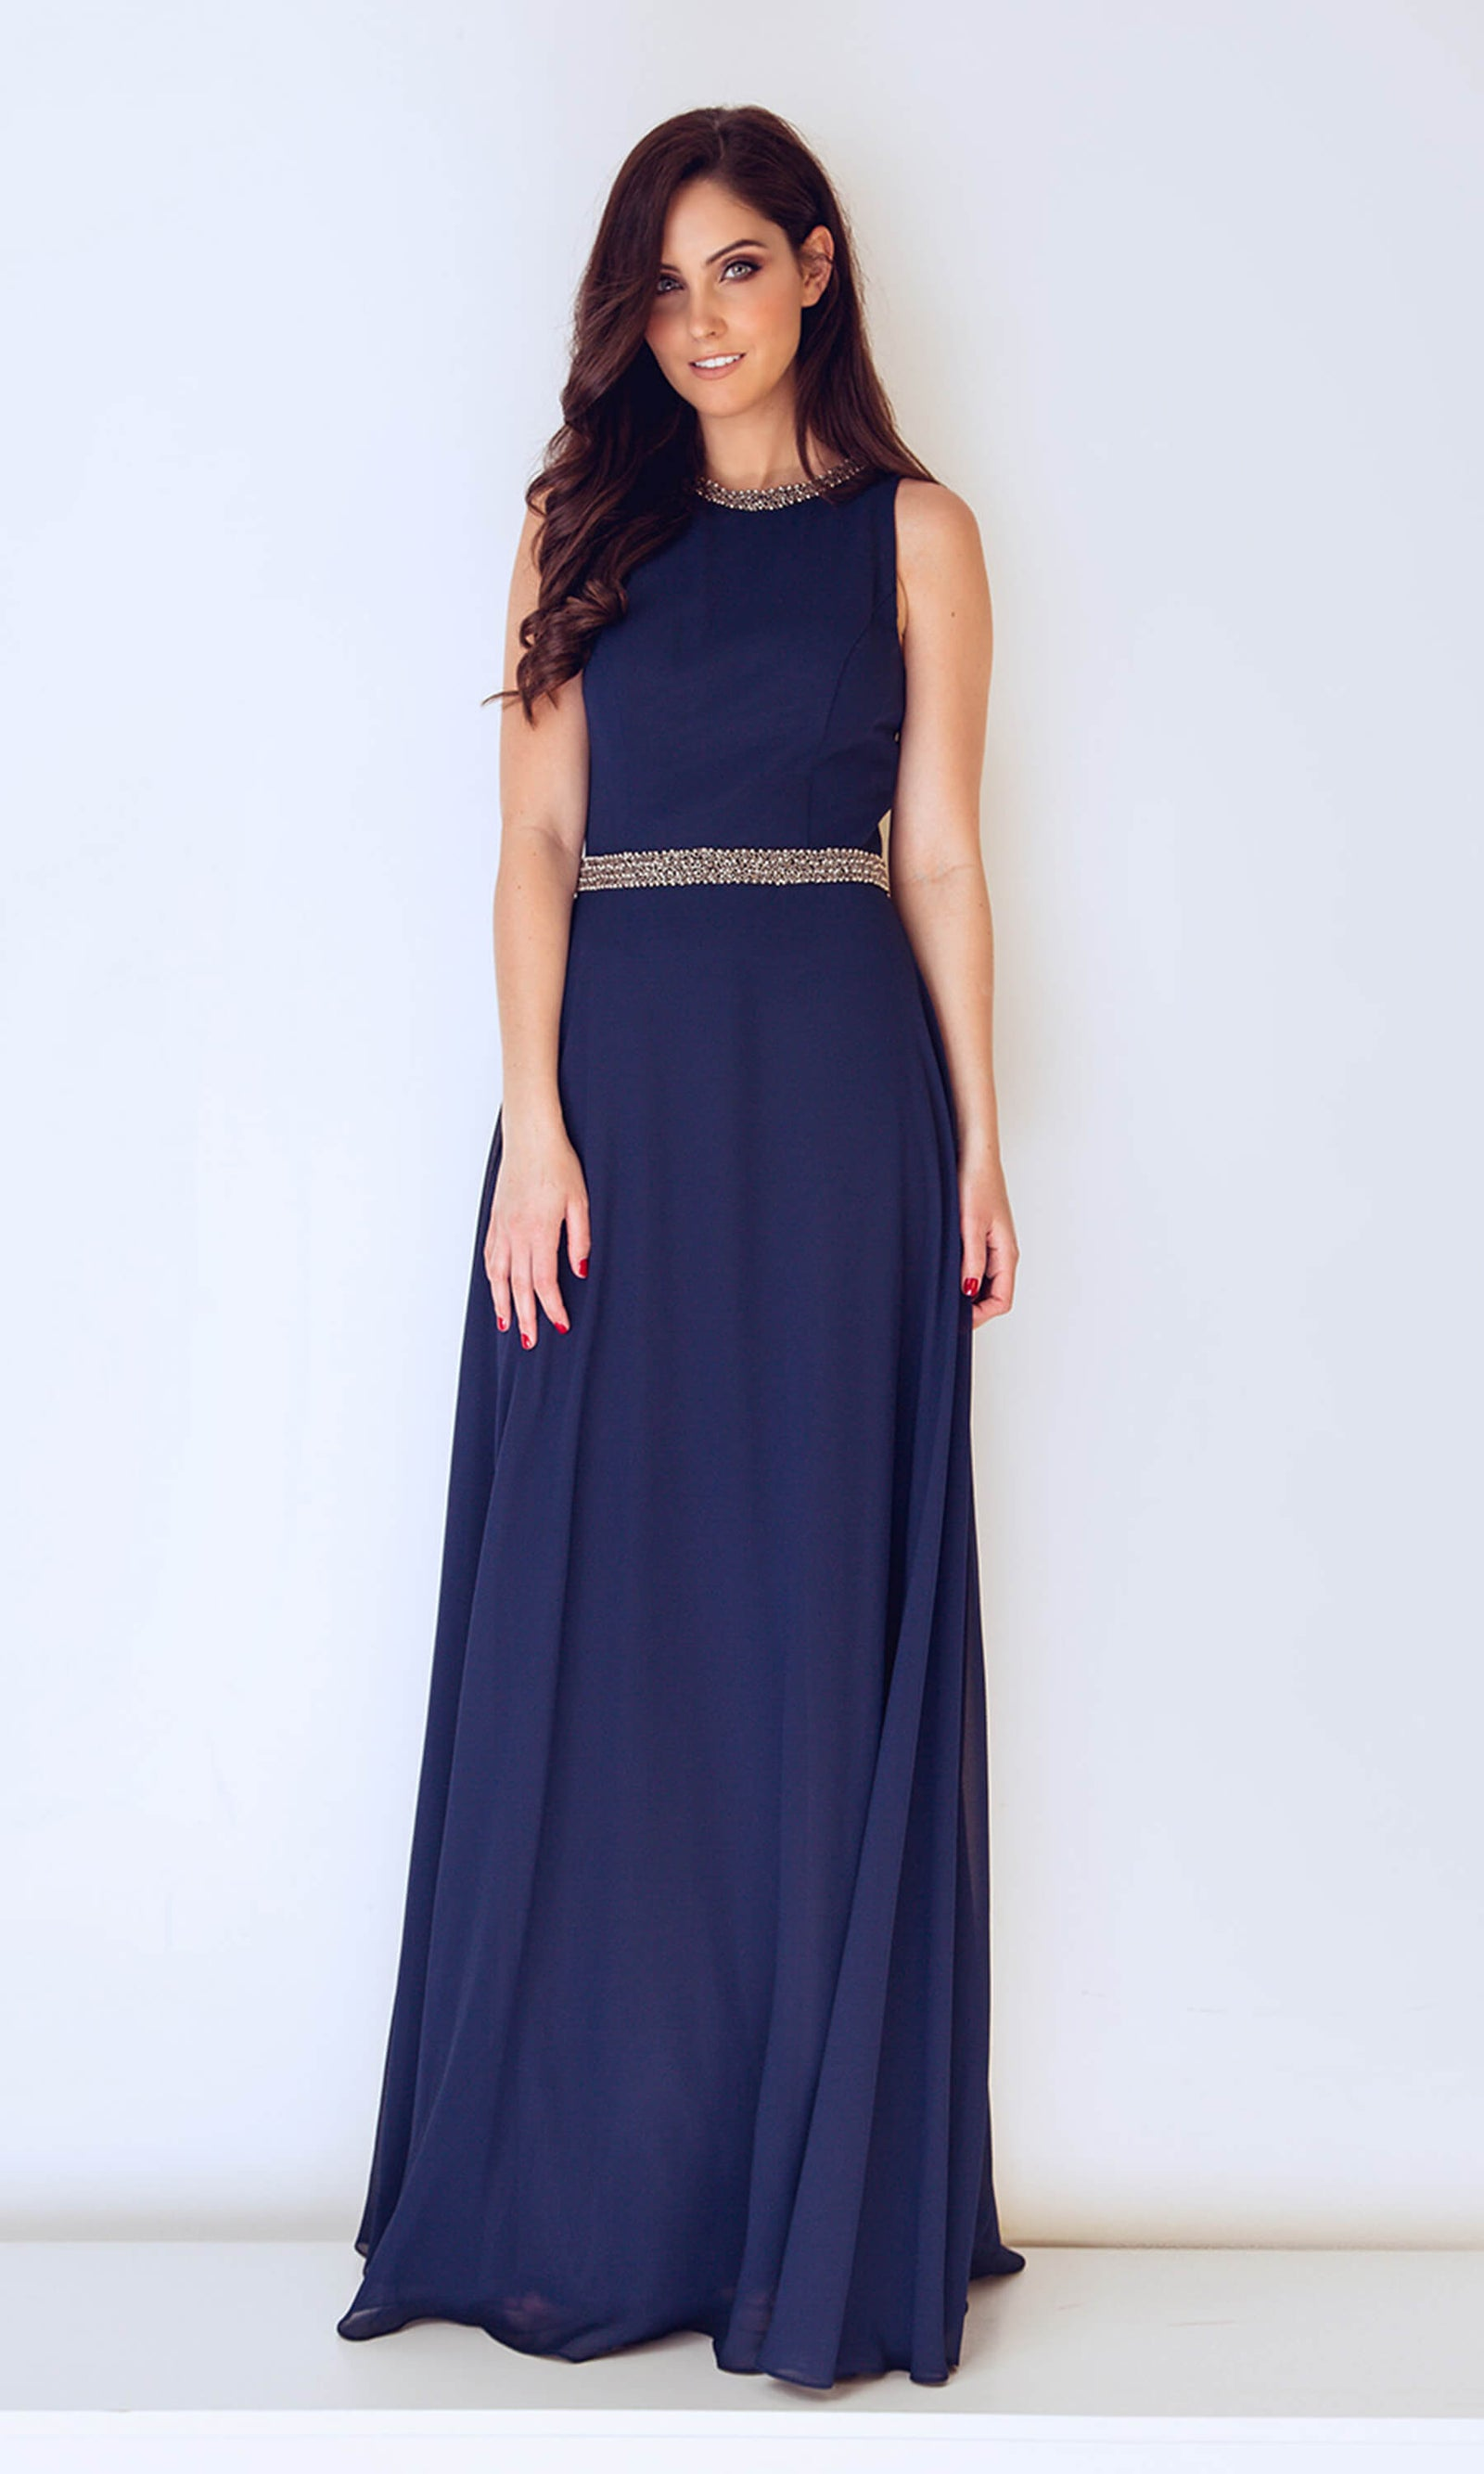 1013229 Navy Dynasty High Neckline Evening Dress